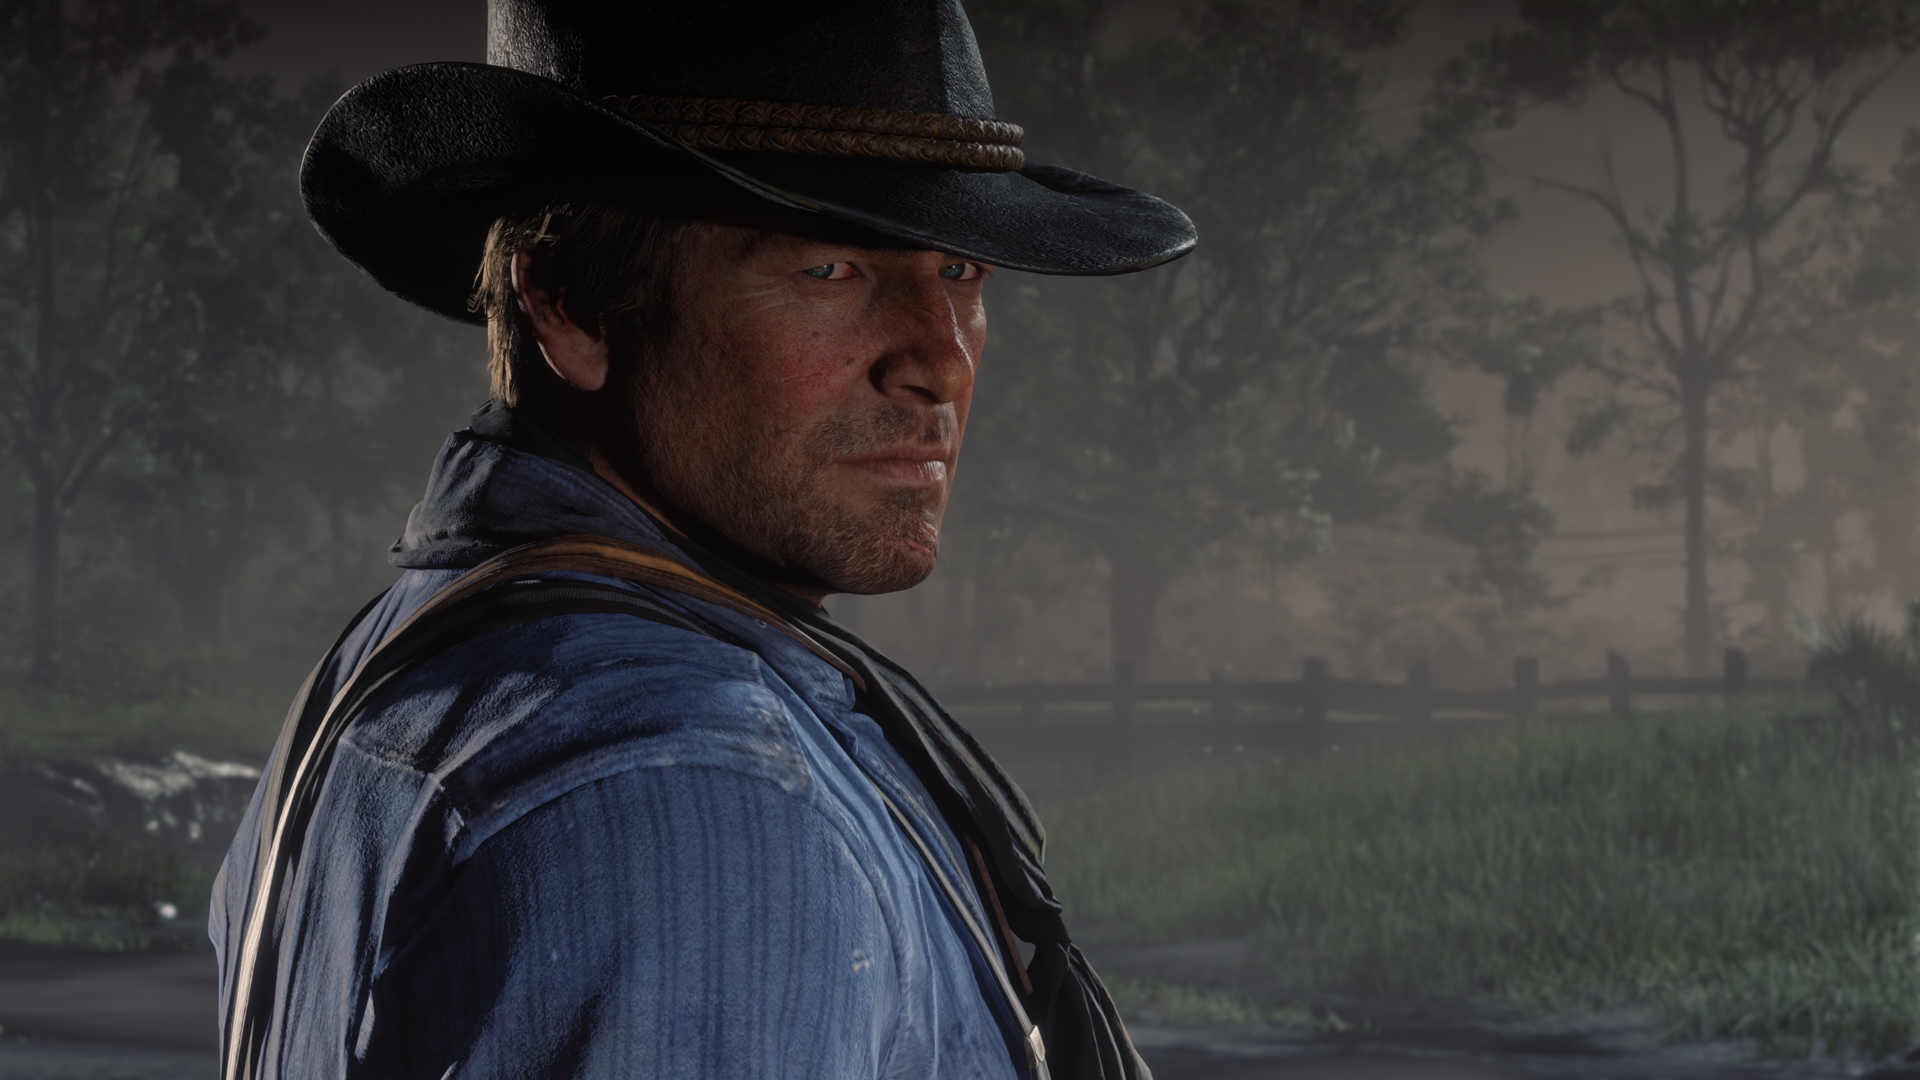 Red Dead Redemption 2 PC specs aren't demanding at all